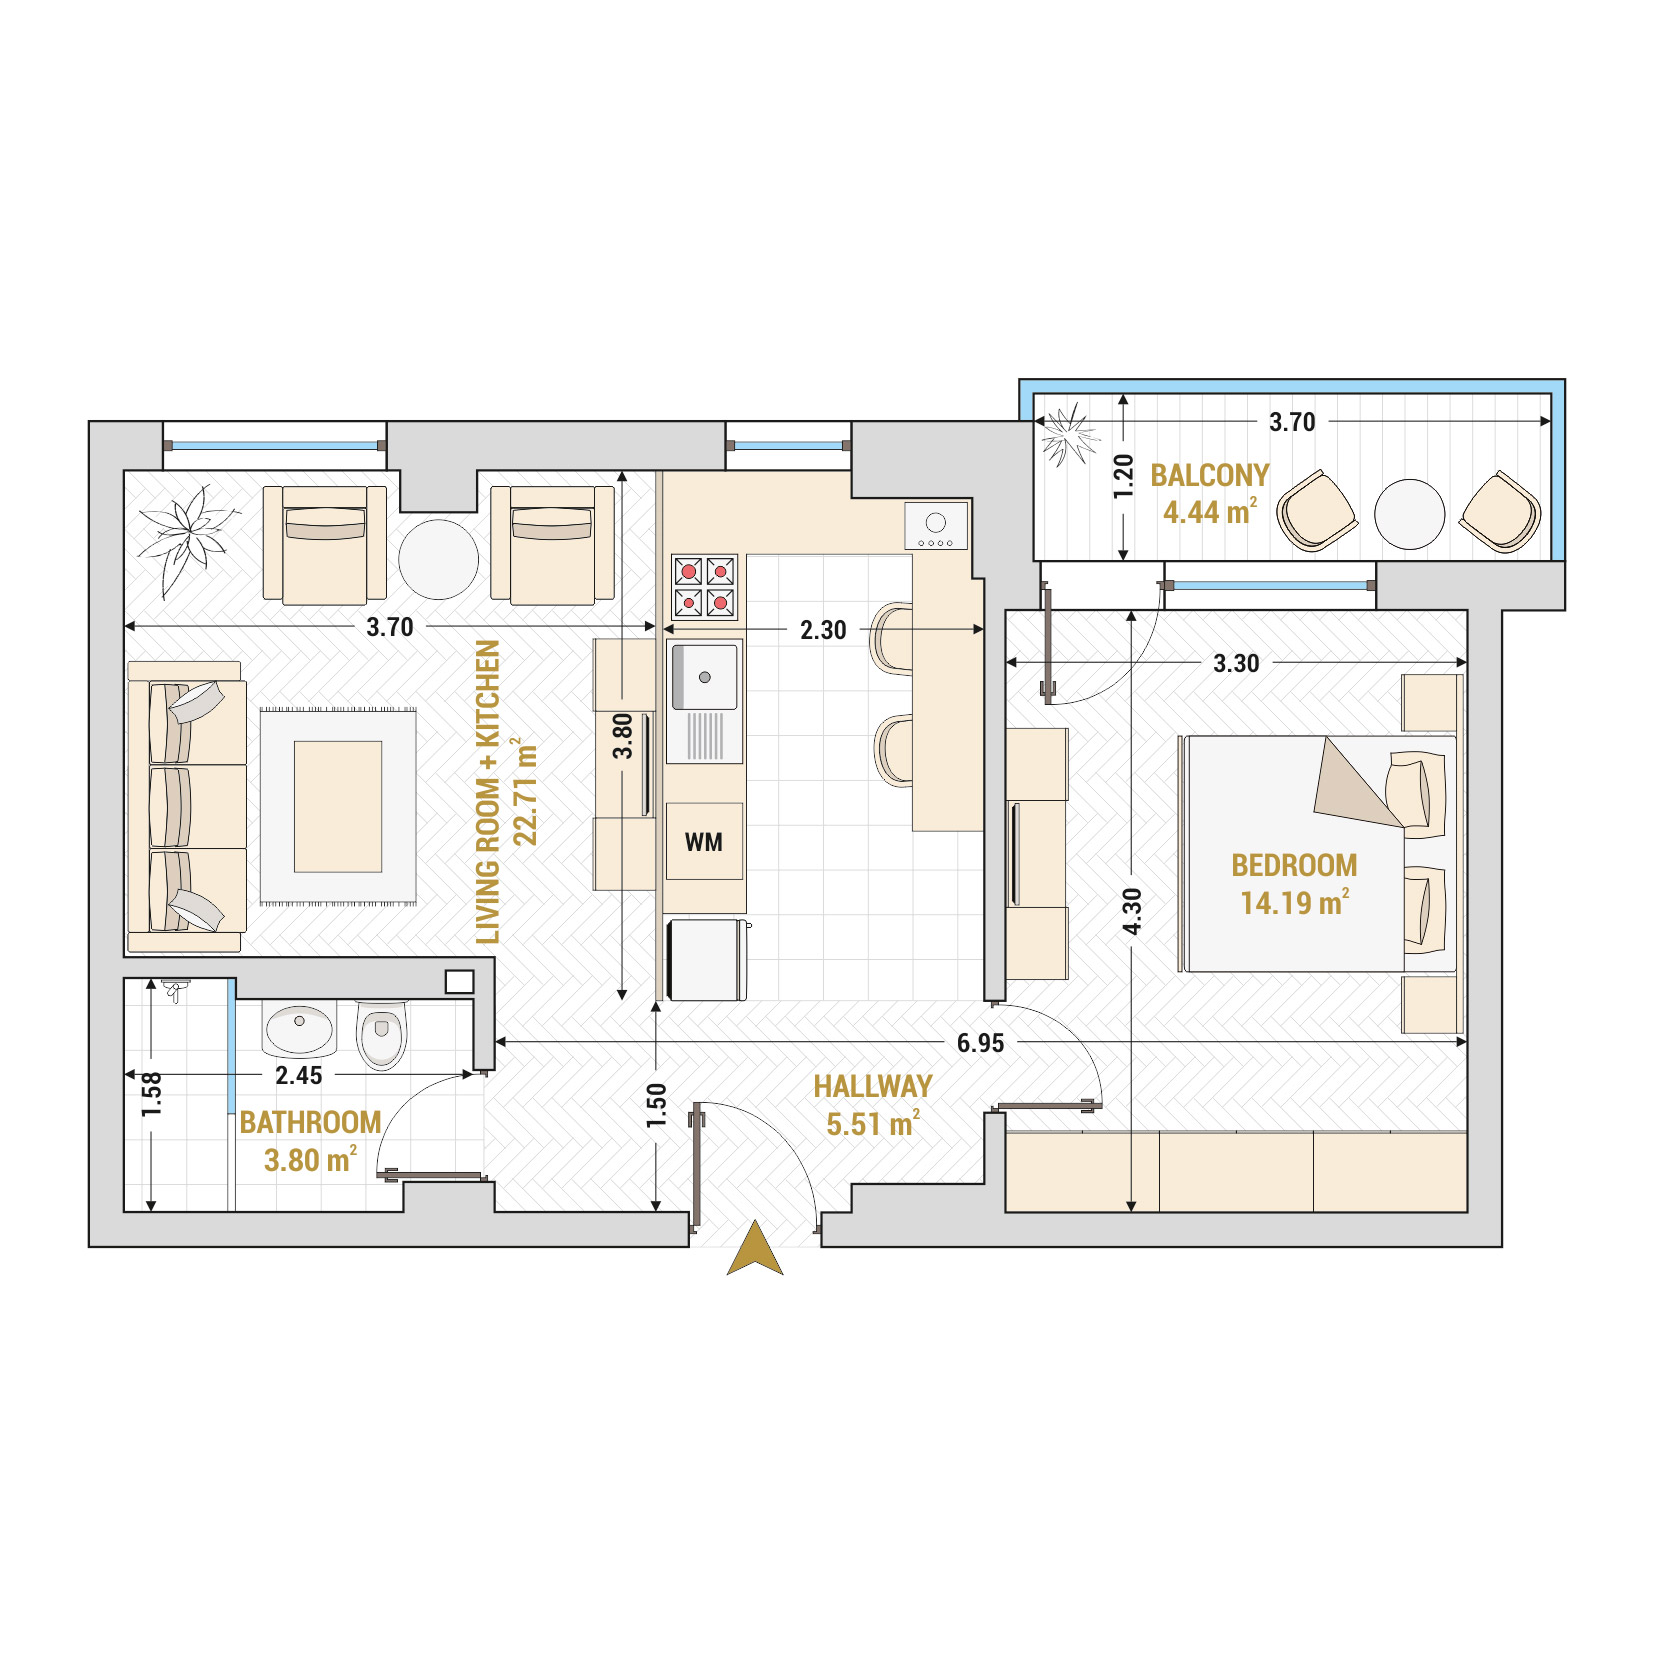 Catedral Residence - 2 Room Apartment for Sale - Bucharest - Romania - Type 3 – S1A